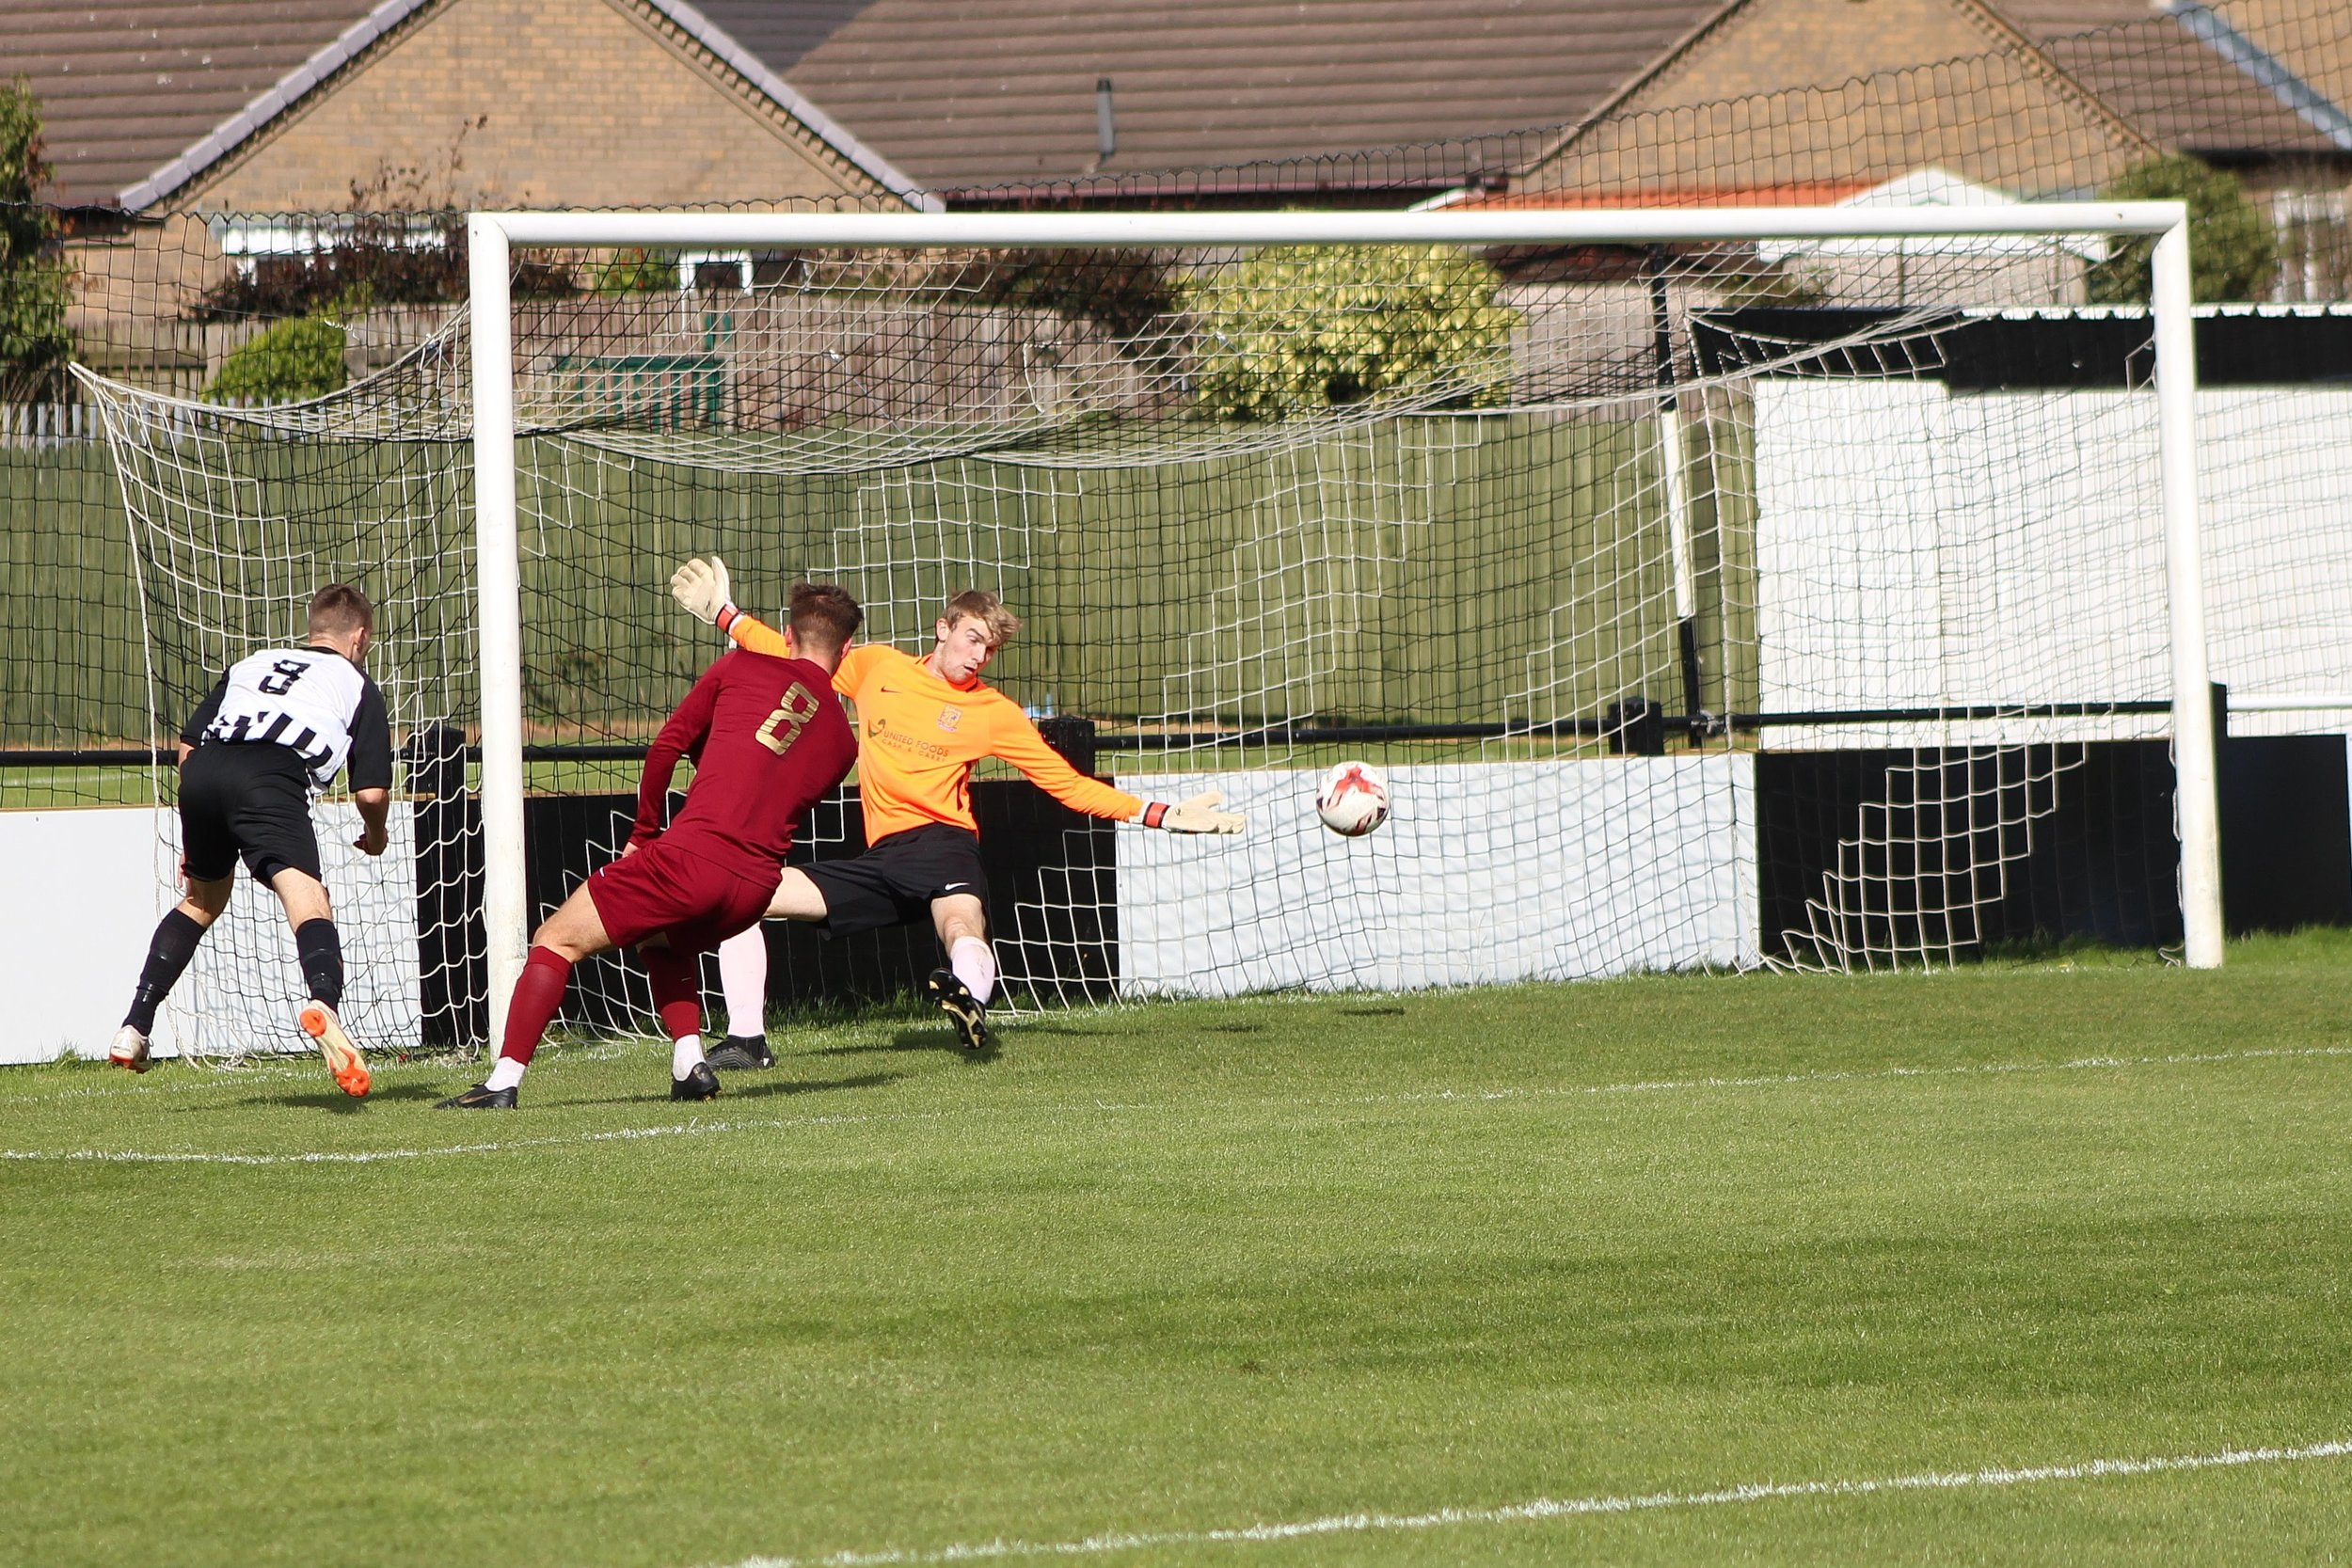 Nathan Keightley scores the second